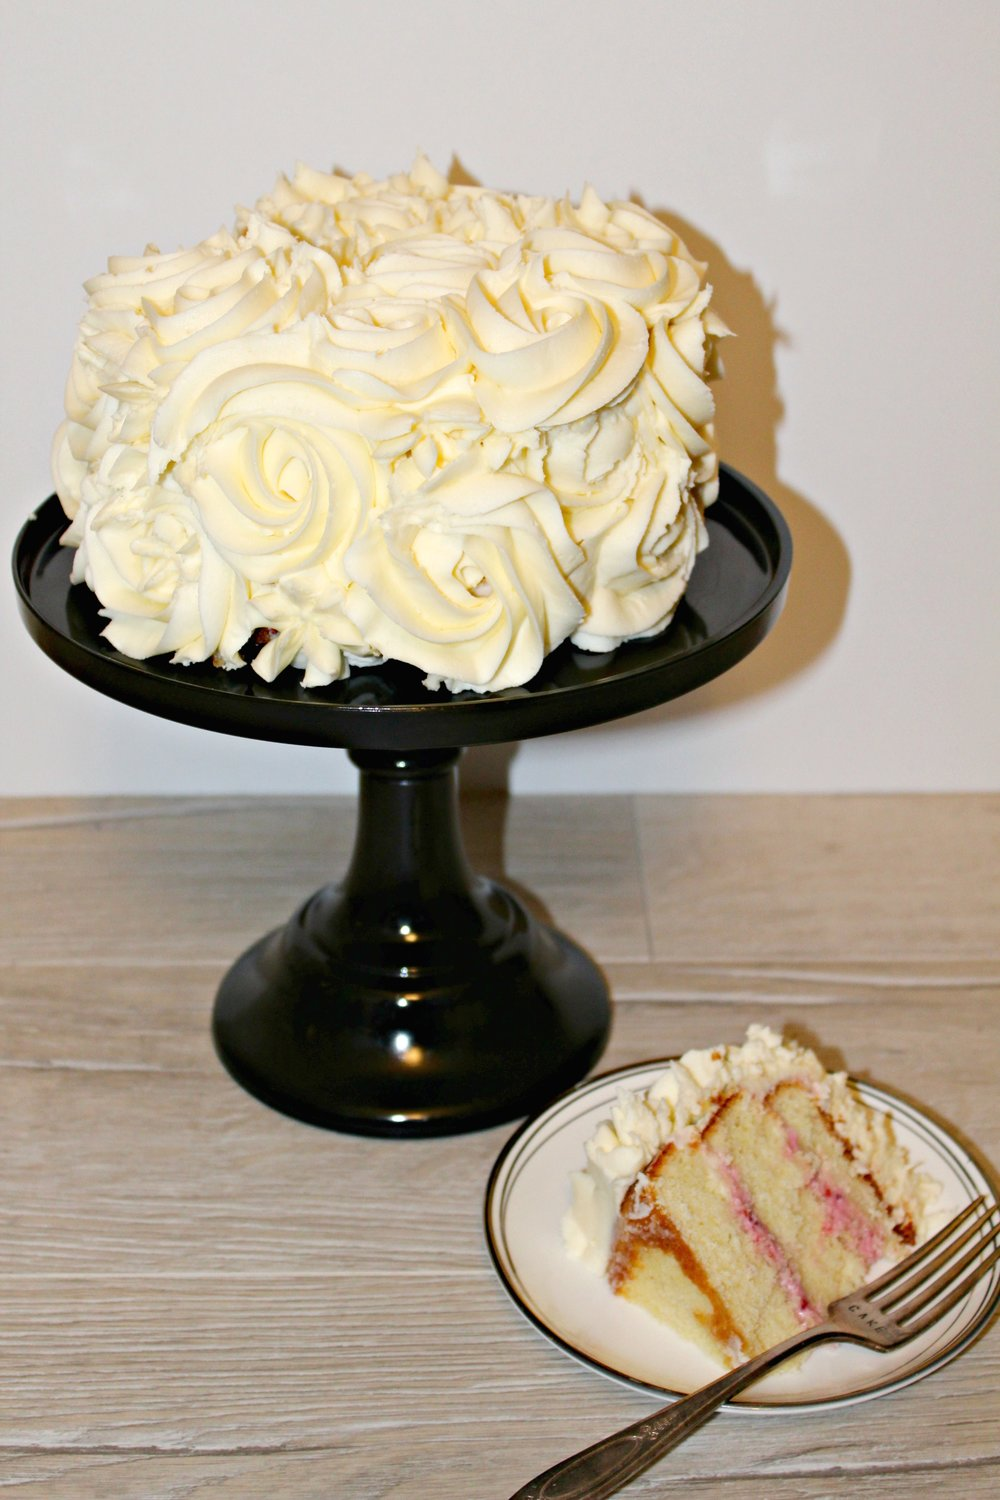 Lemon Cake filled with Raspberry Cream Cheese filling